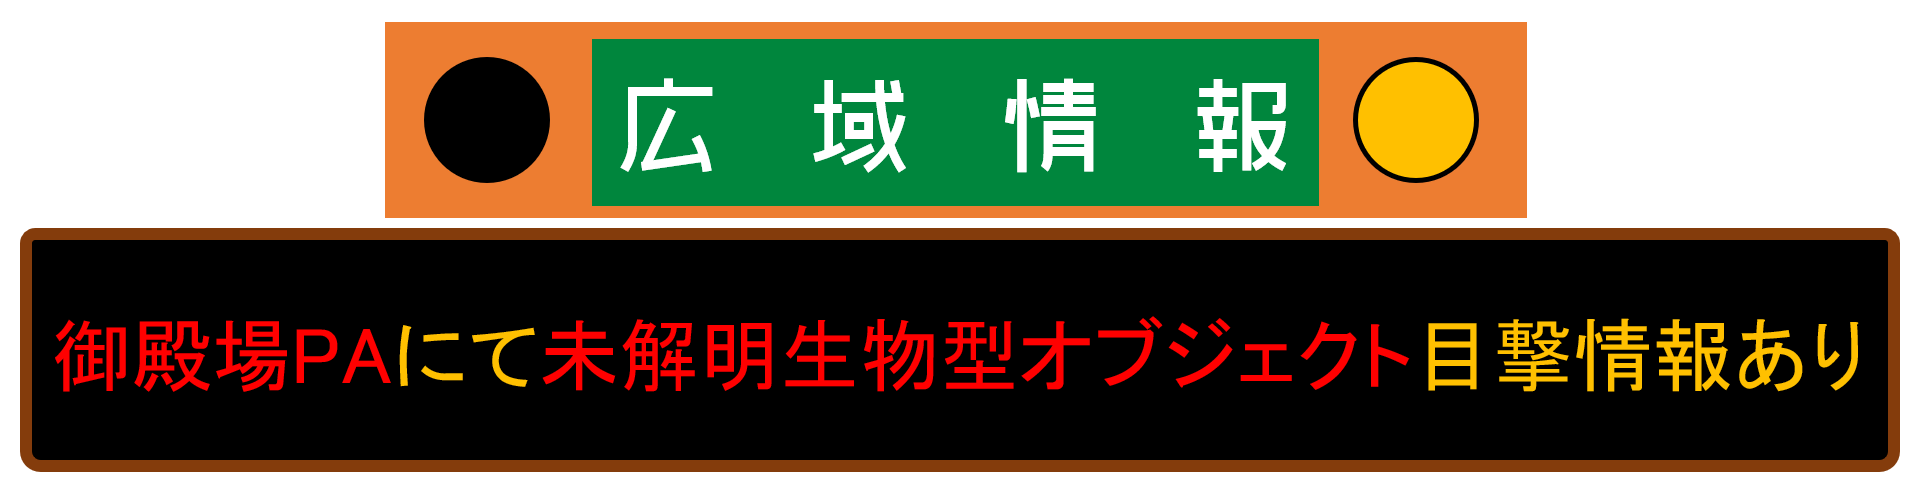 Sign5.png